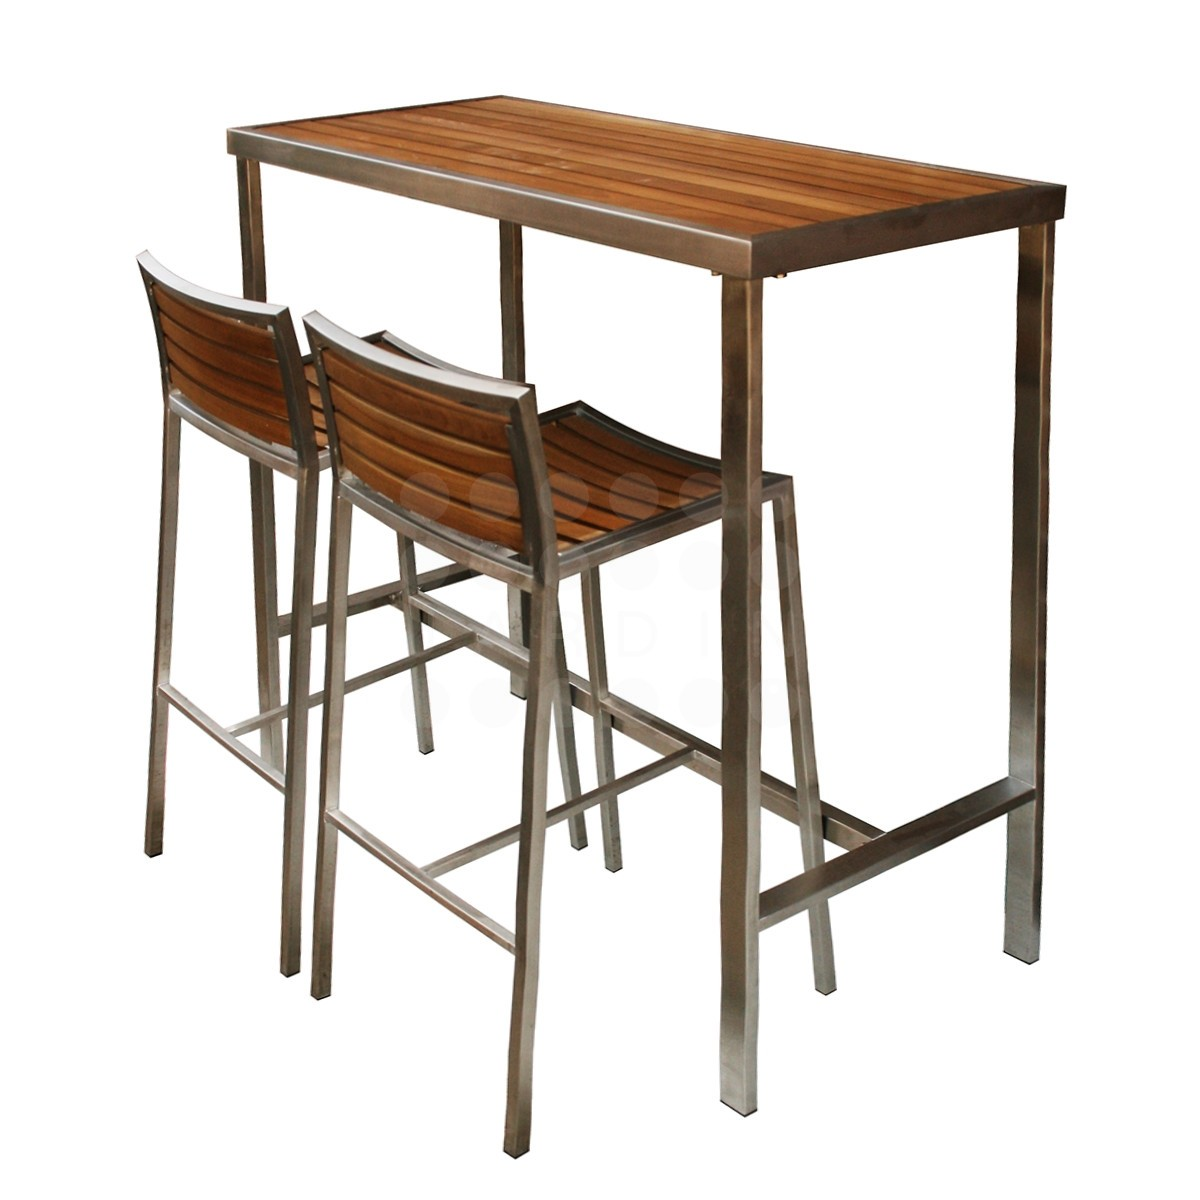 teak bar table and chairs outdoor chair covers home depot evolve high stainless collection